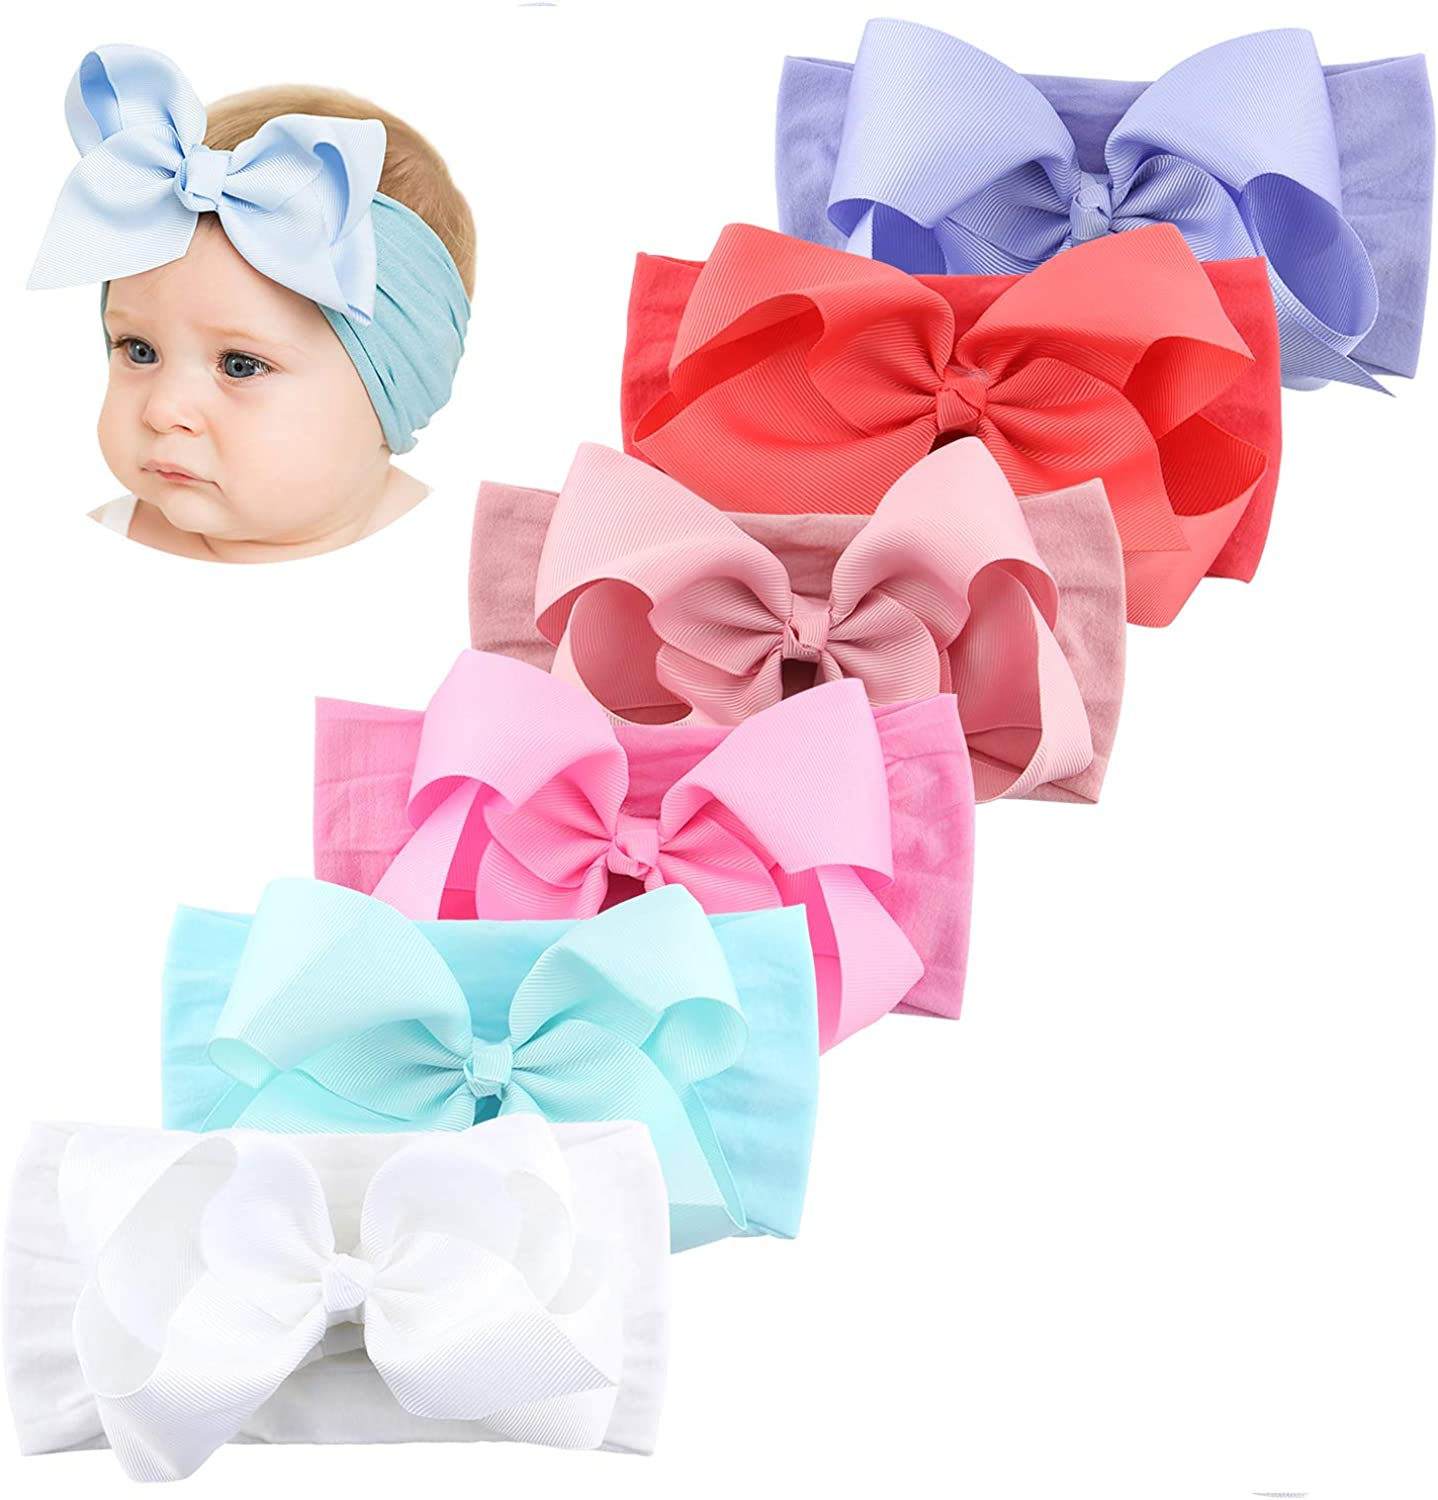 Makone Handmade Baby Nylon Headband with Big Hair Bows Stretchy Headbands for Infant Baby Girls